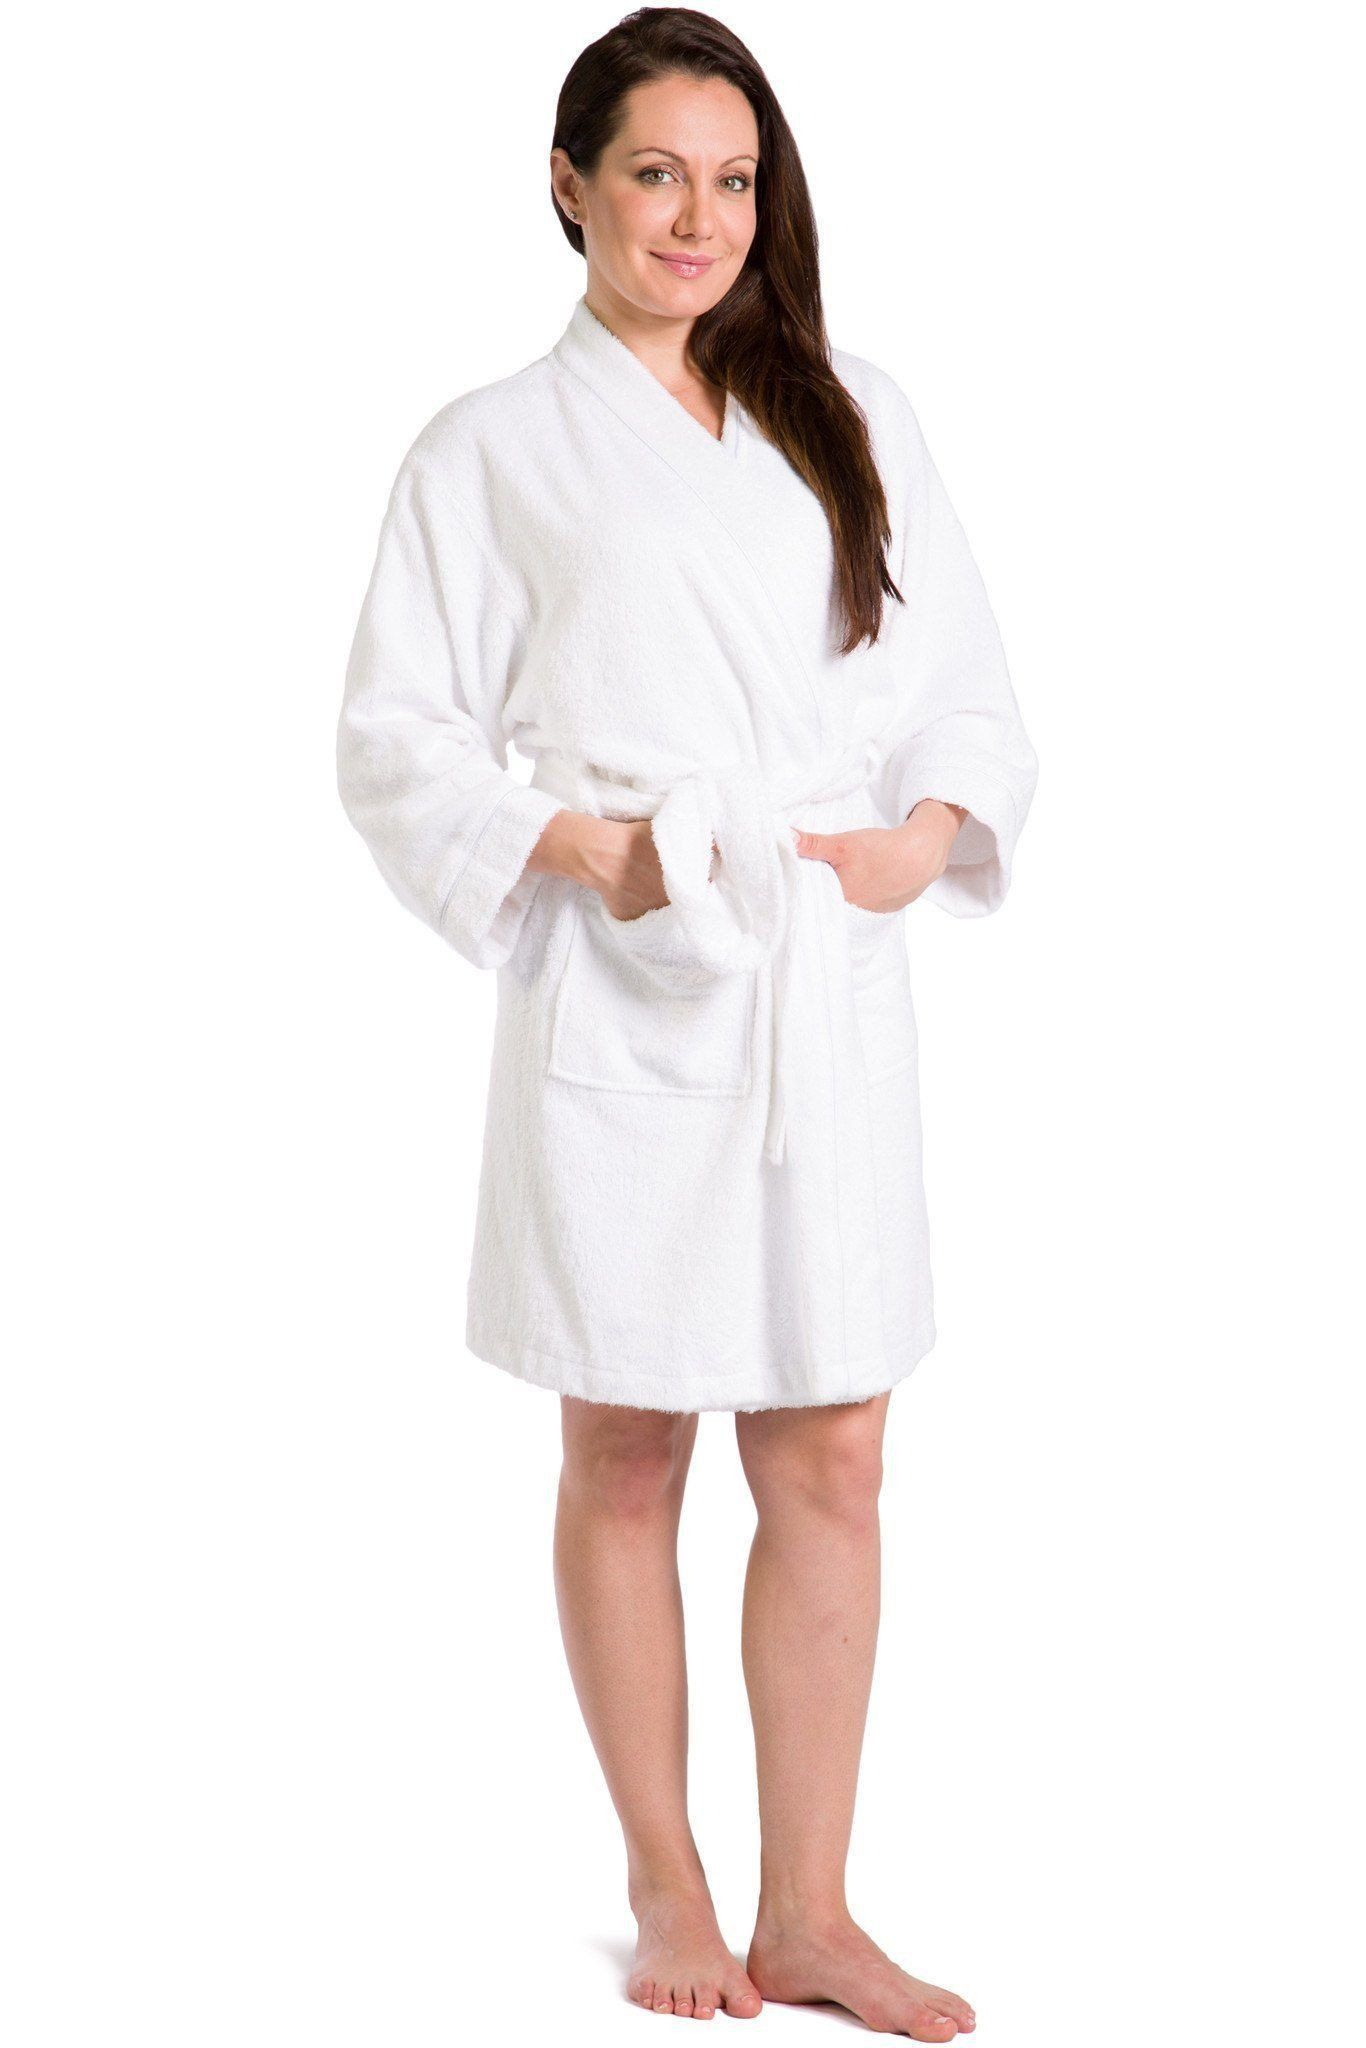 Product Features This Simple Housecoats and Dusters with classic striped sleepwear,fun.